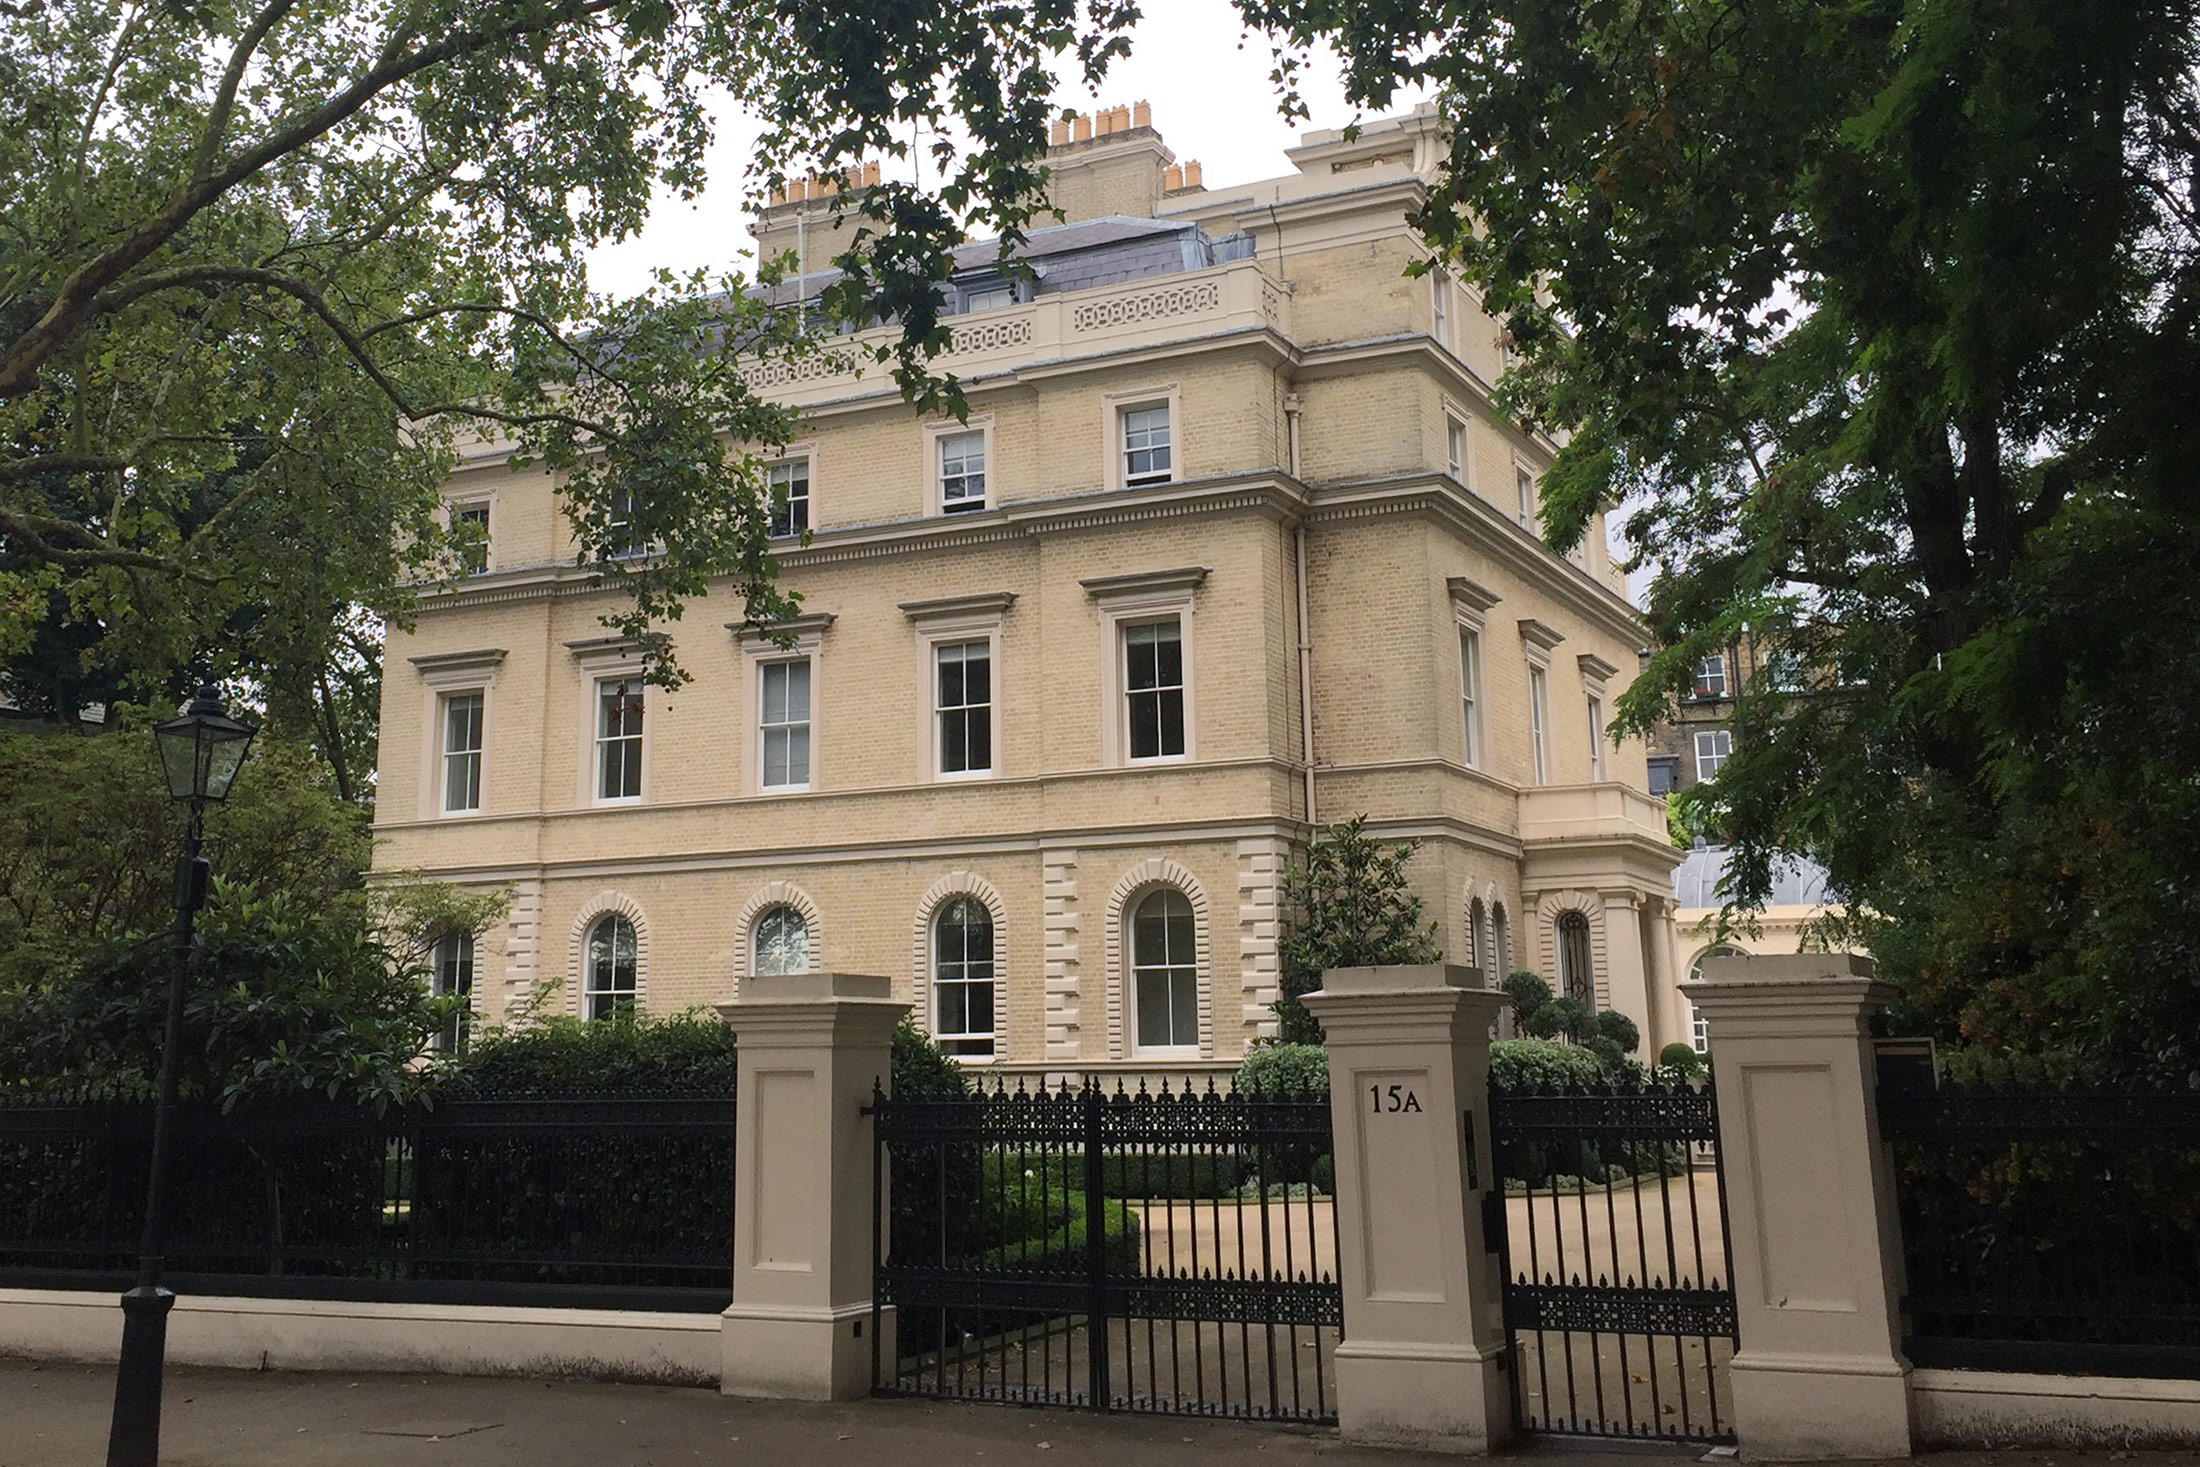 London billionaires row home said to sell for 85 million for The kensington house